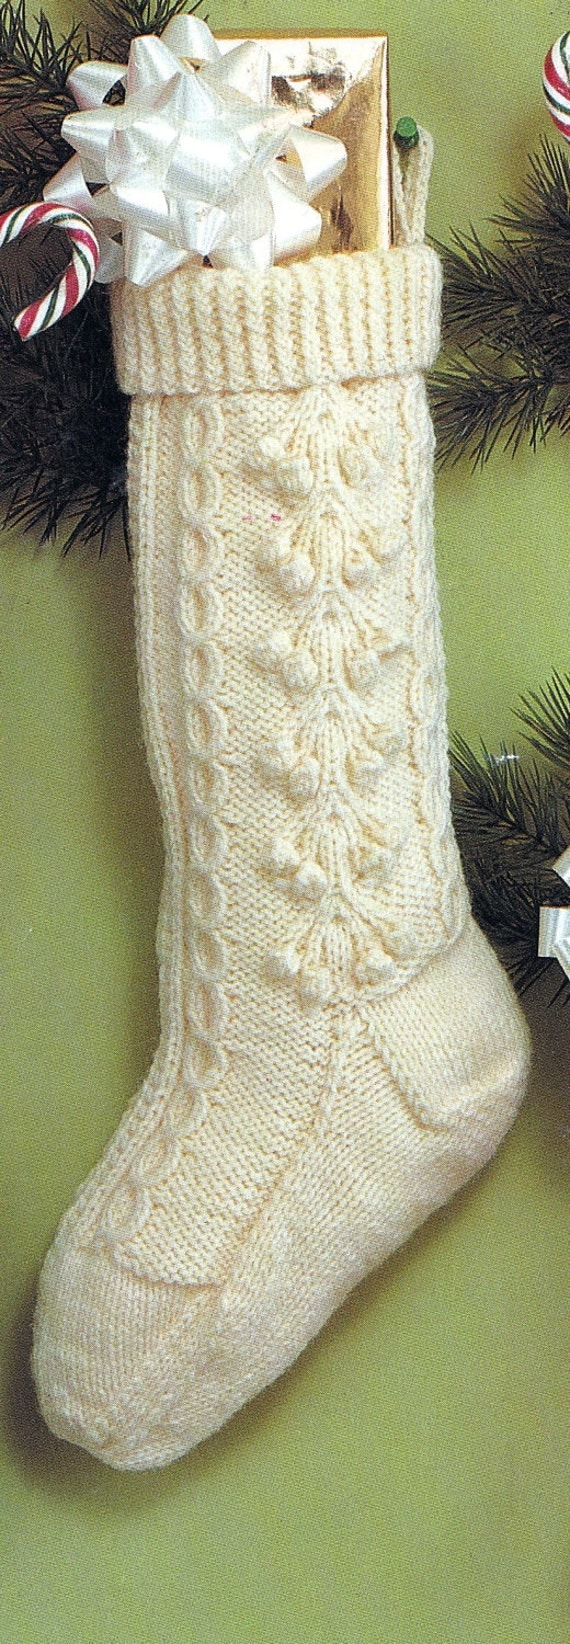 Christmas Stocking Knit Pattern : Knit Christmas Fisherman Stocking Vintage Knitting PDF by padurns